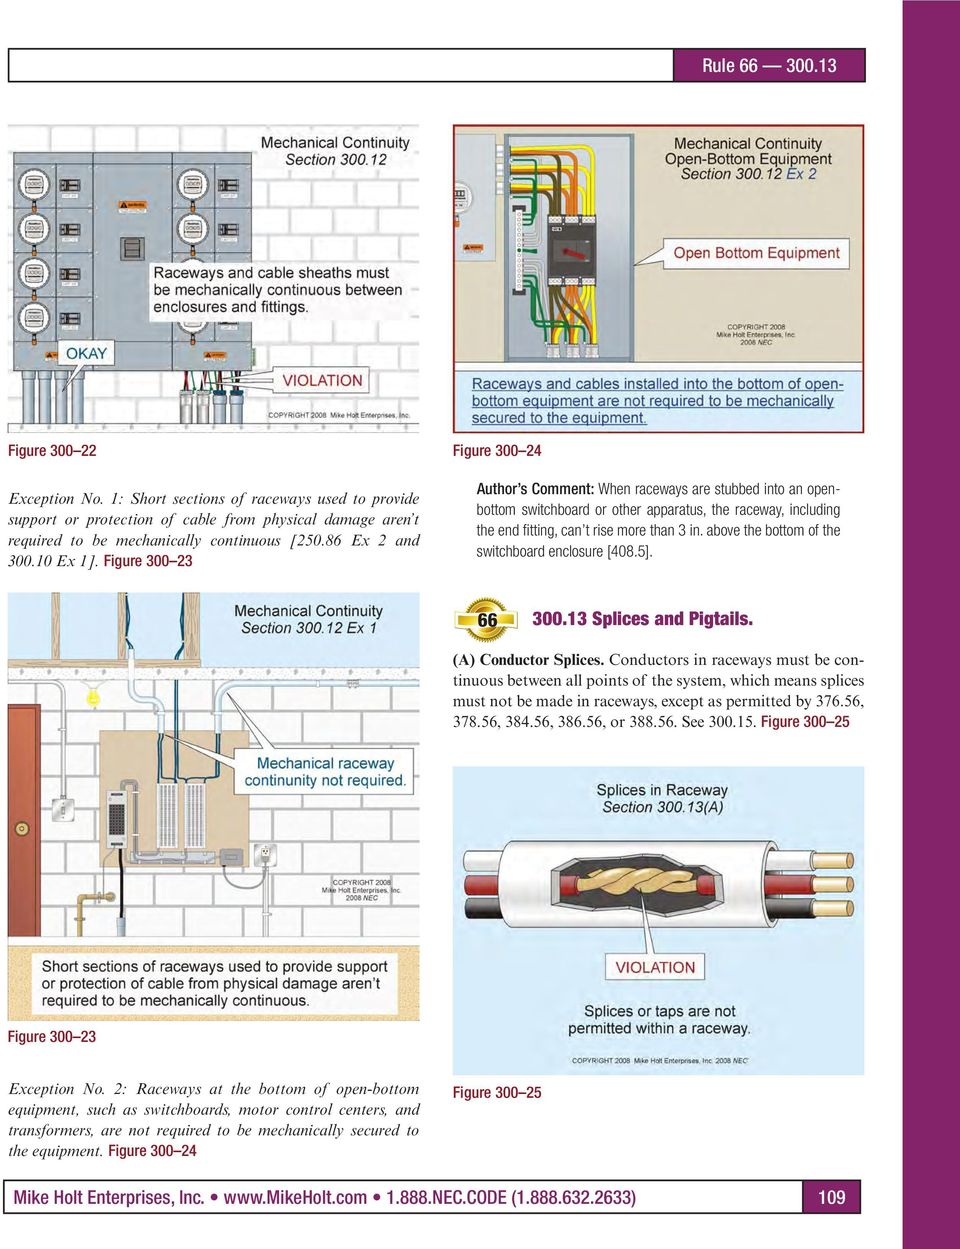 introduction to chapter 3 wiring methods and materials pdf rh docplayer net NEC Fire Alarm Wiring NEC Fire Alarm Wiring